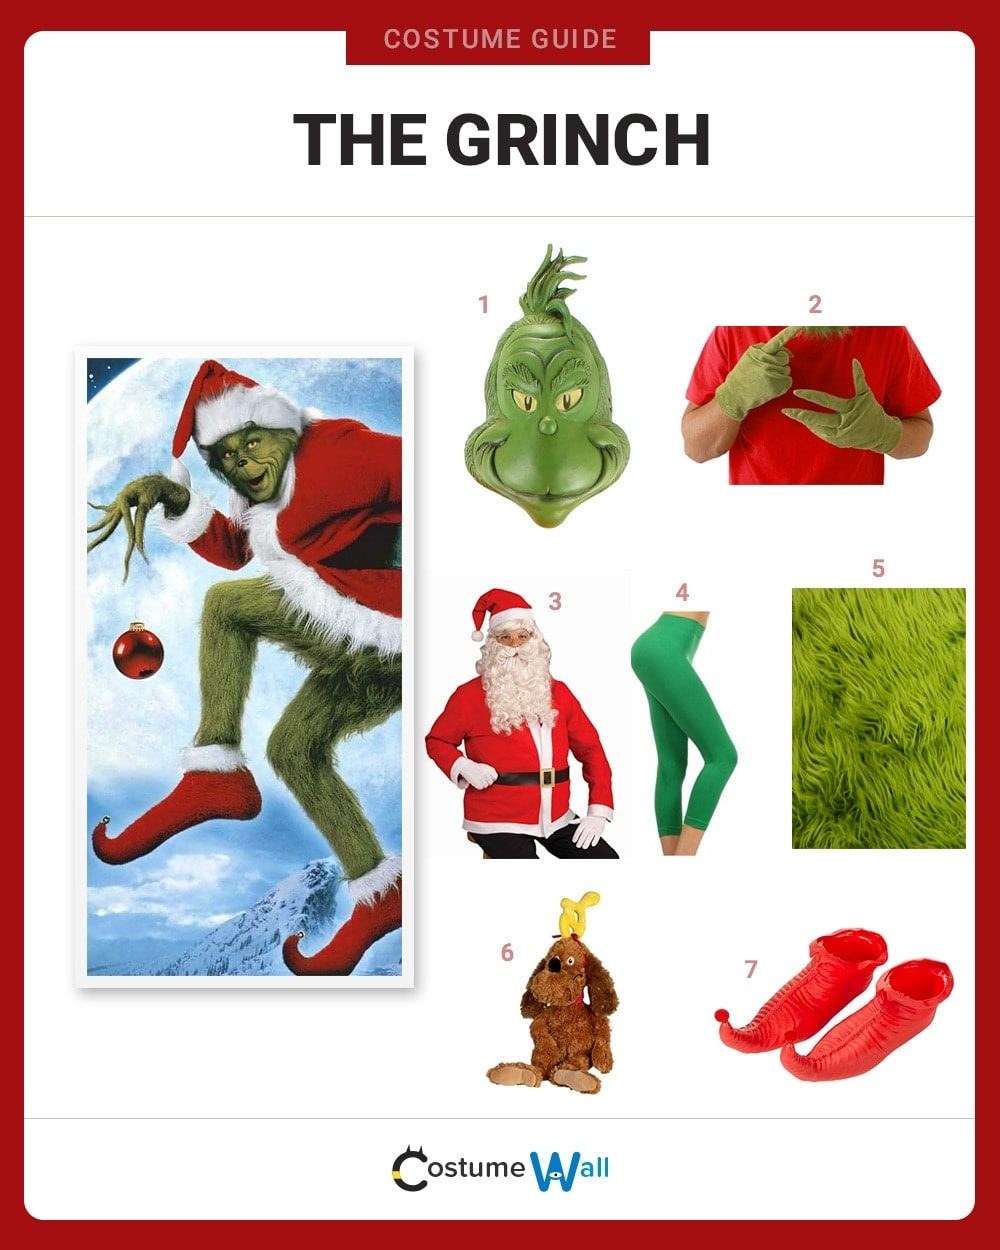 The Grinch Costume Guide